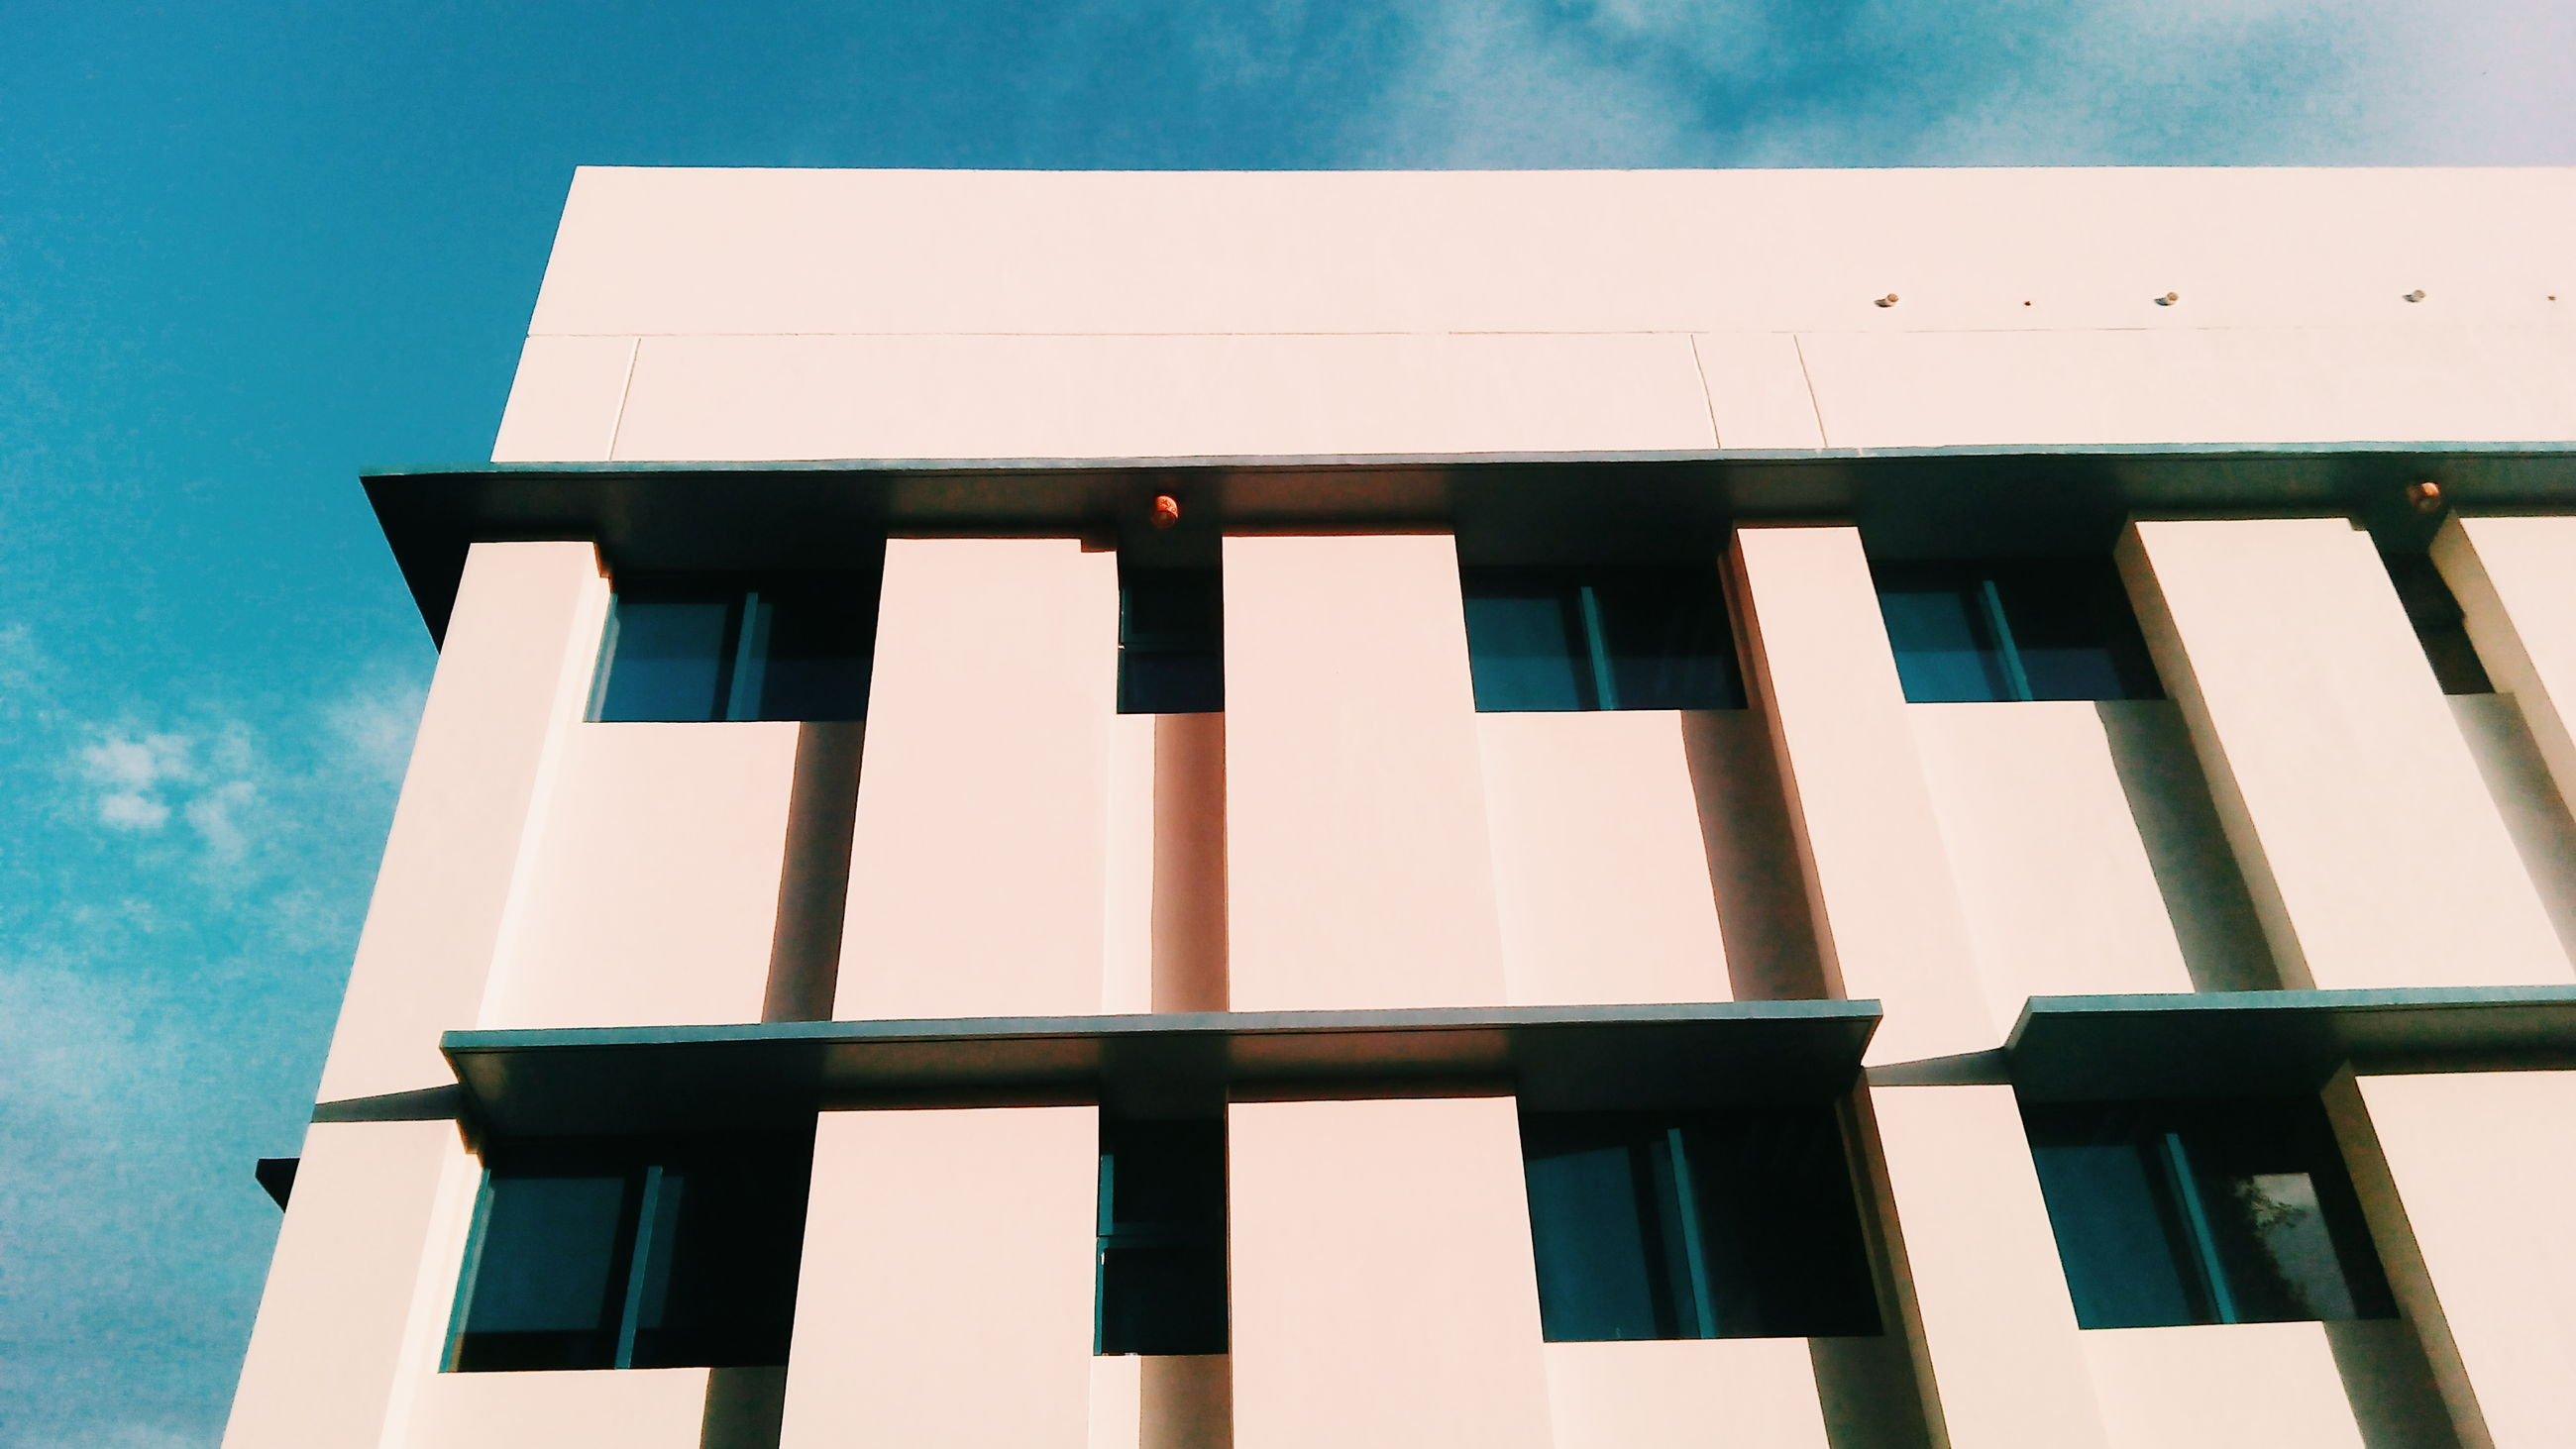 architecture, built structure, building exterior, low angle view, window, sky, day, outdoors, blue, cloud - sky, no people, building story